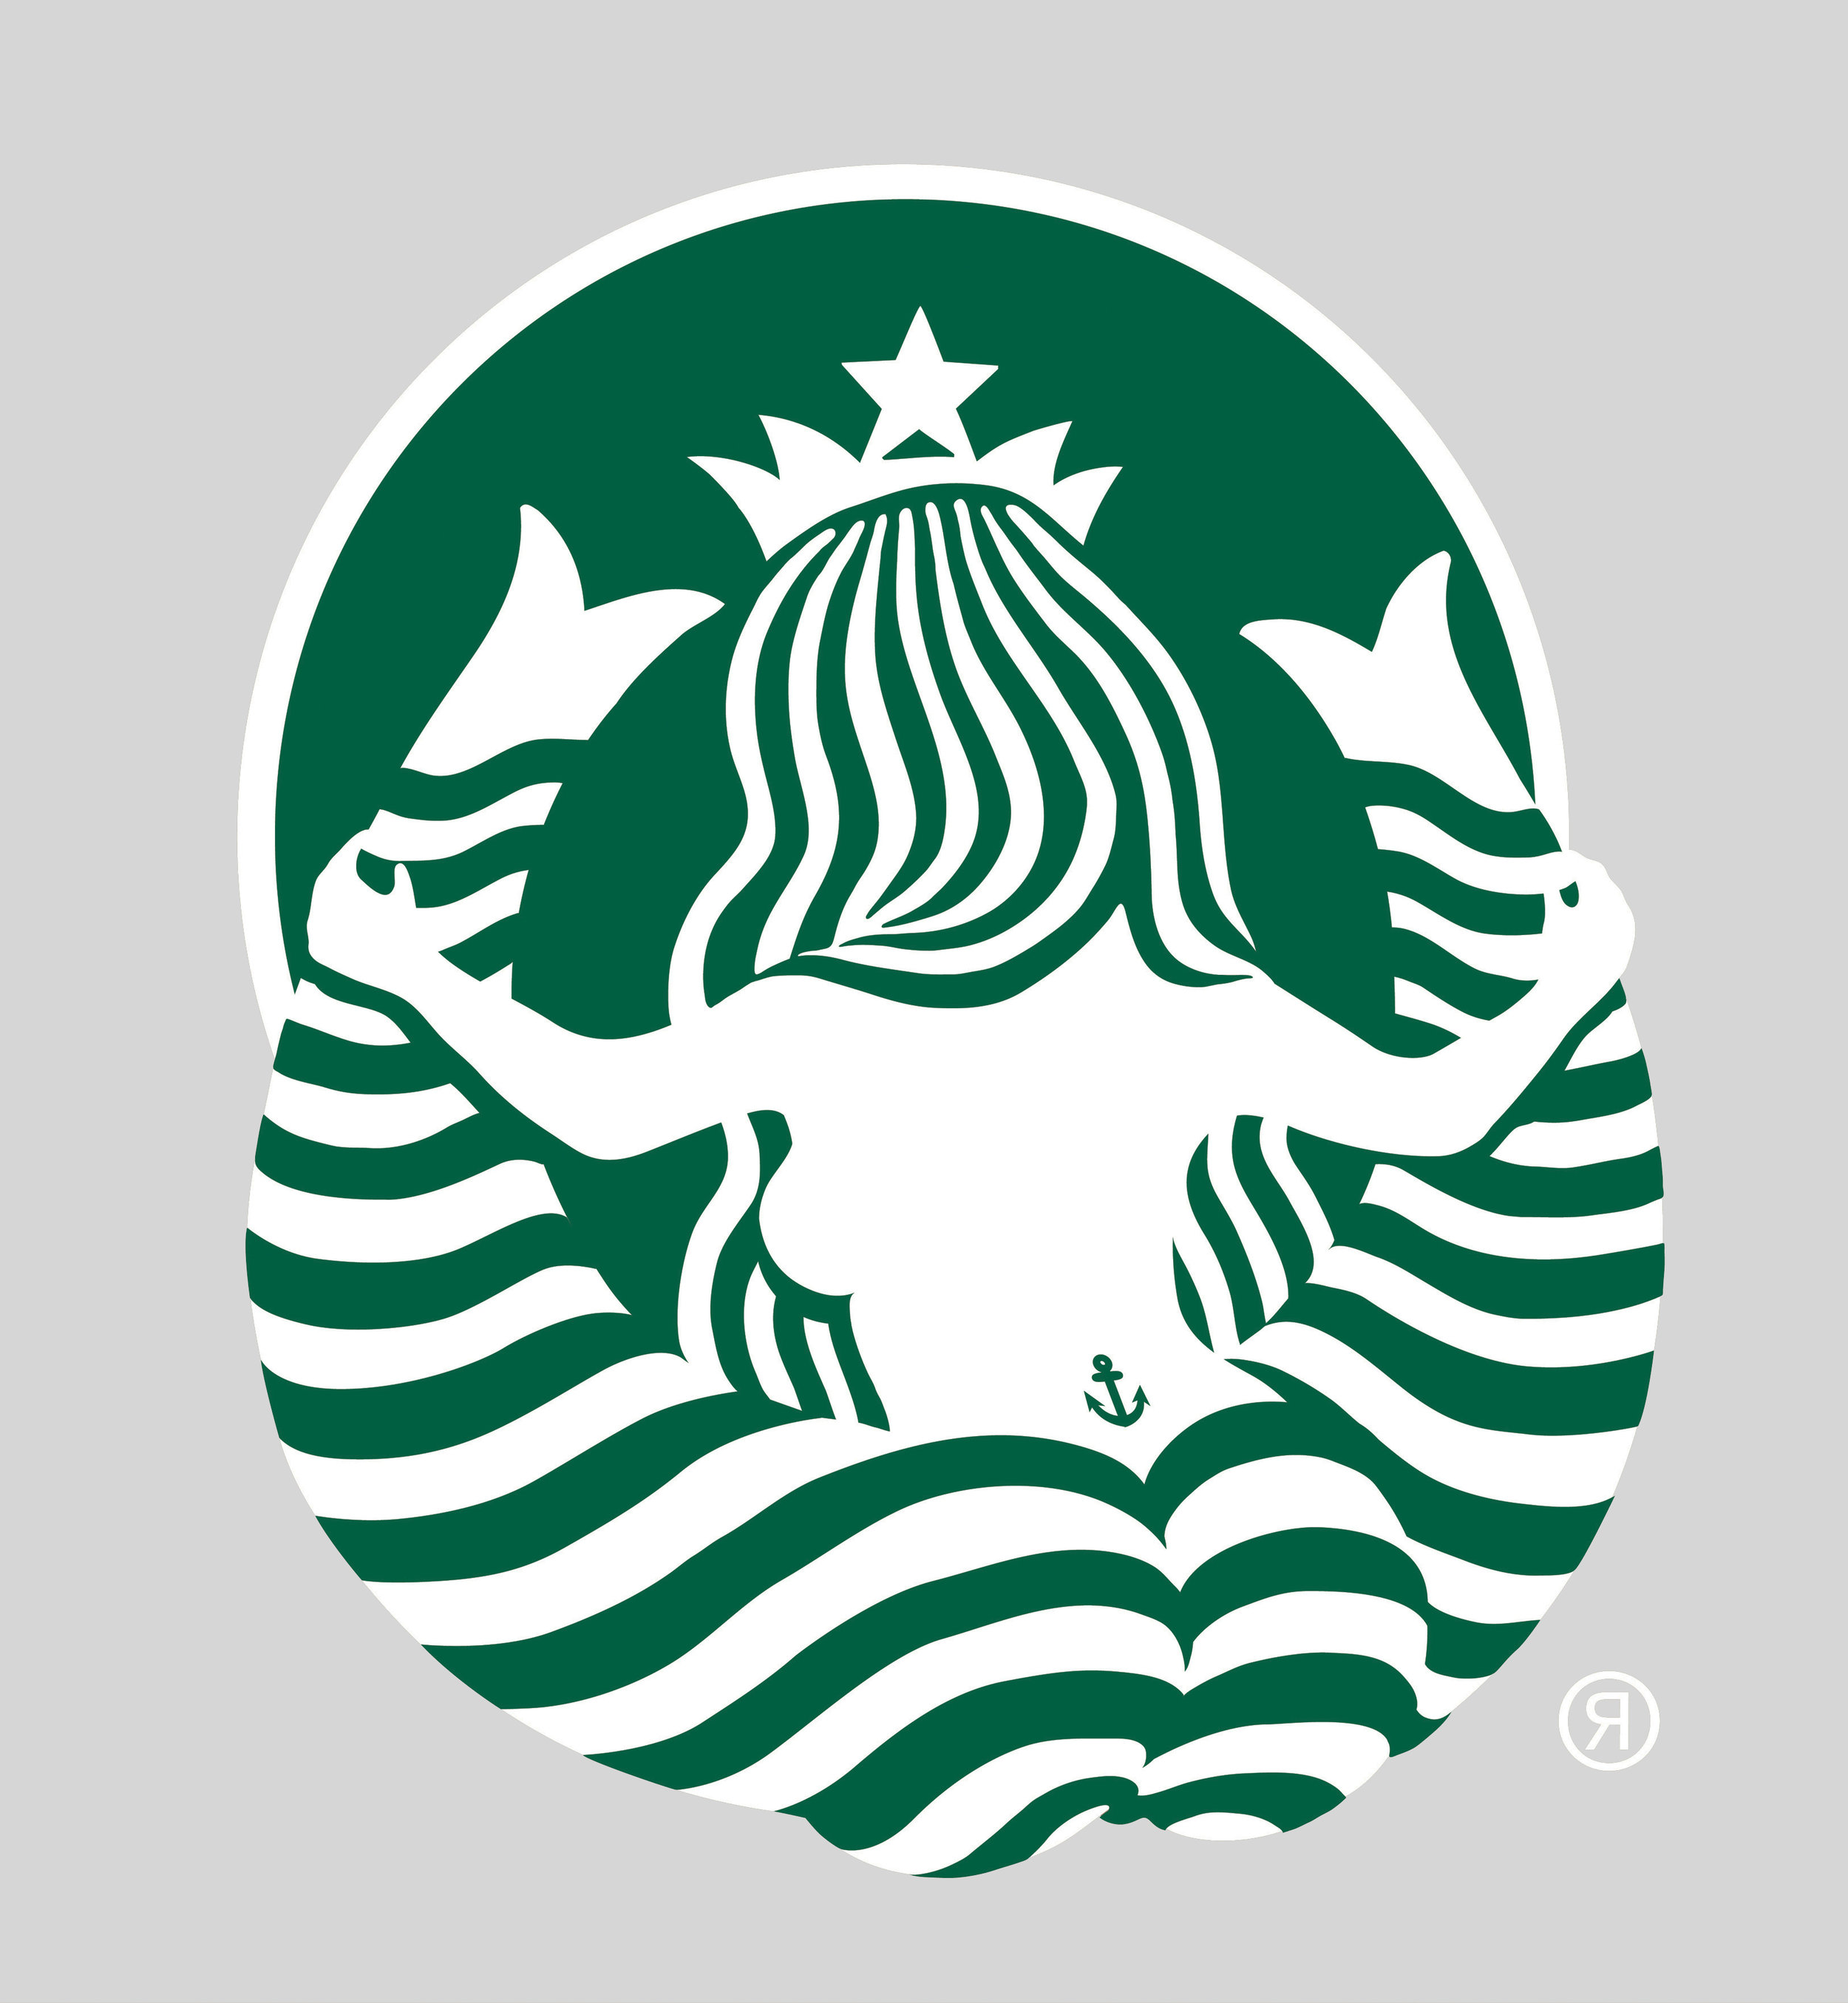 Starbucks logo  for FHM's 100 sexiest women in non-existence